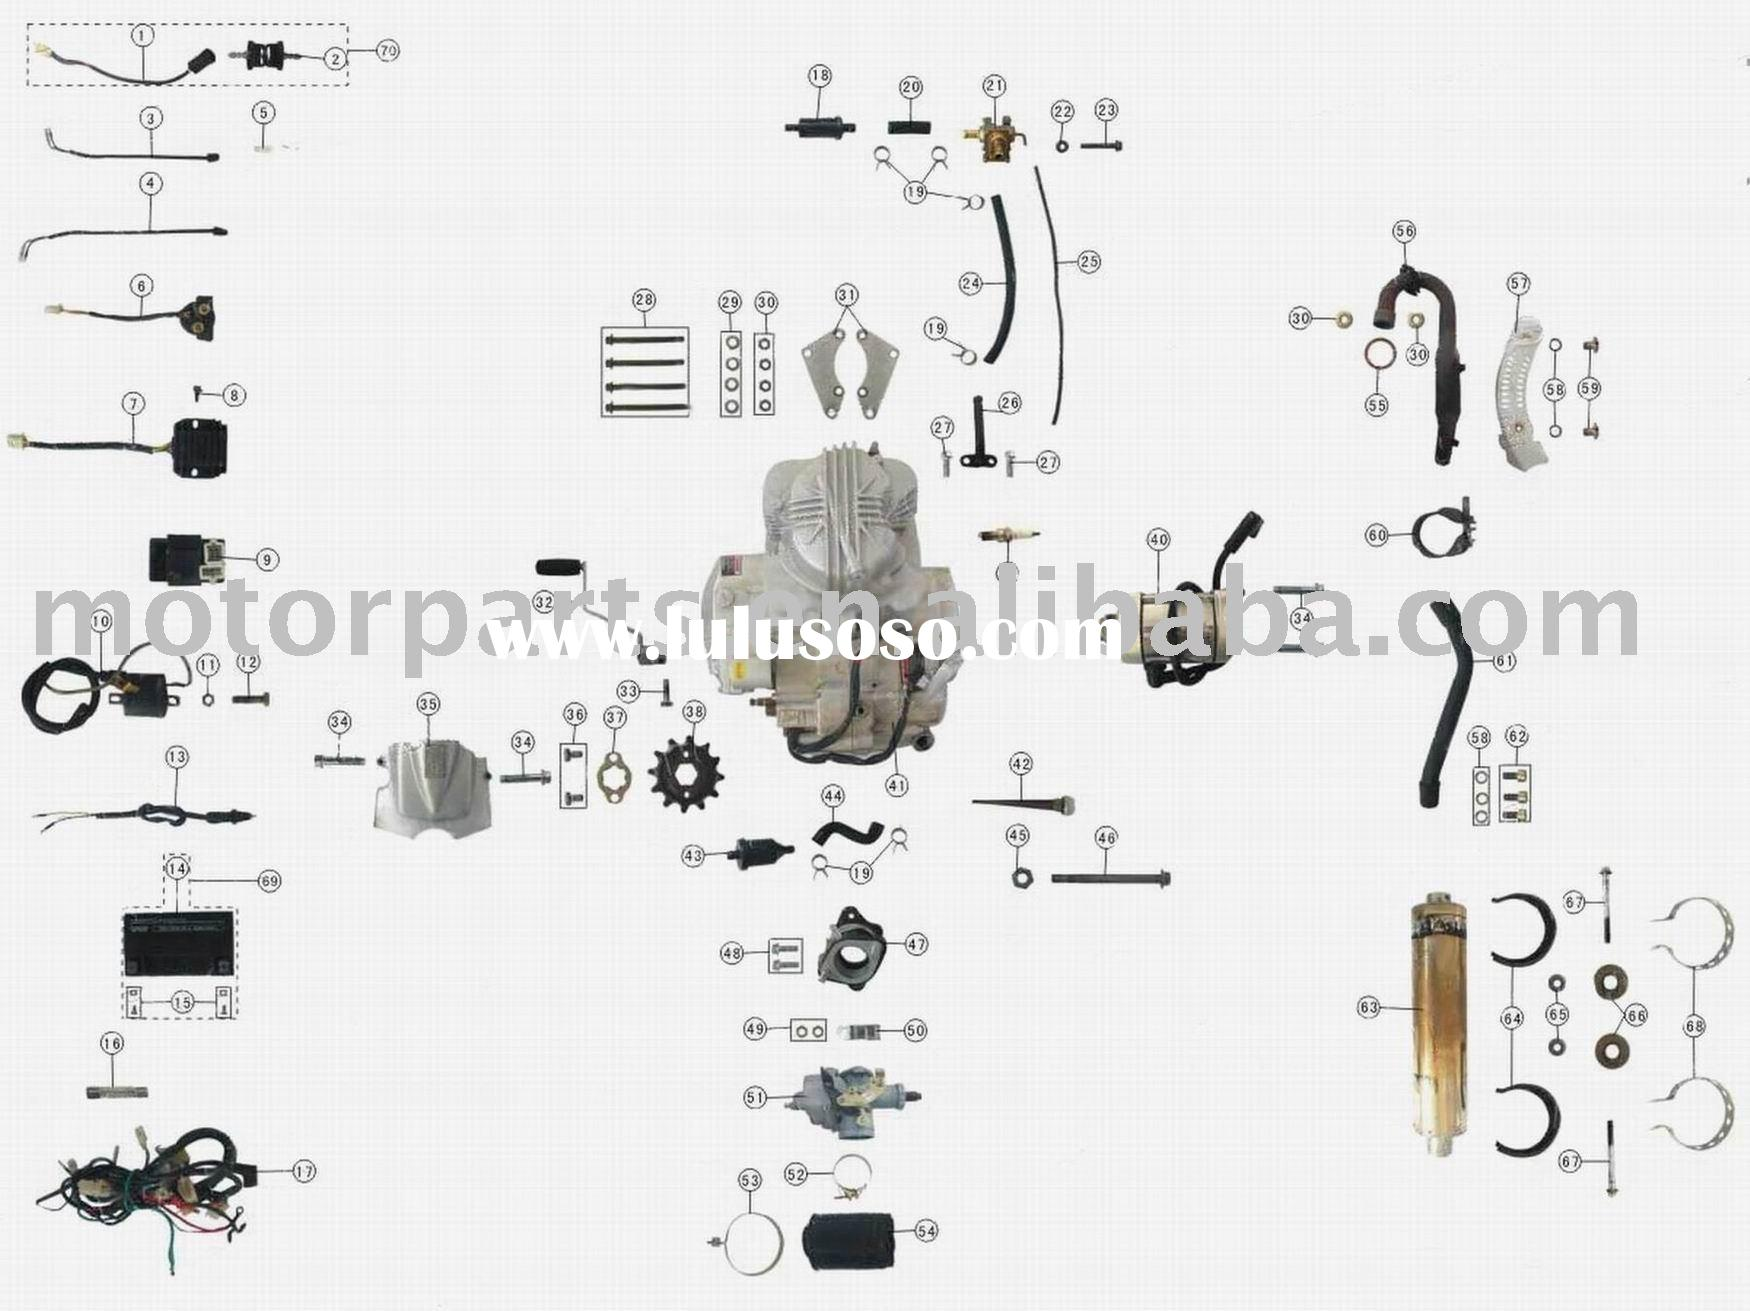 Suzuki Atv Fuel Line Diagrams additionally Wiring Diagrams Linhai 300cc Scooter additionally Dazon Raider 150 Wiring Harness additionally Howhit 150cc Wiring Diagram furthermore 250cc Engine Parts Mag o Coil 250cc ATv Engine Parts. on 150cc engine with reverse